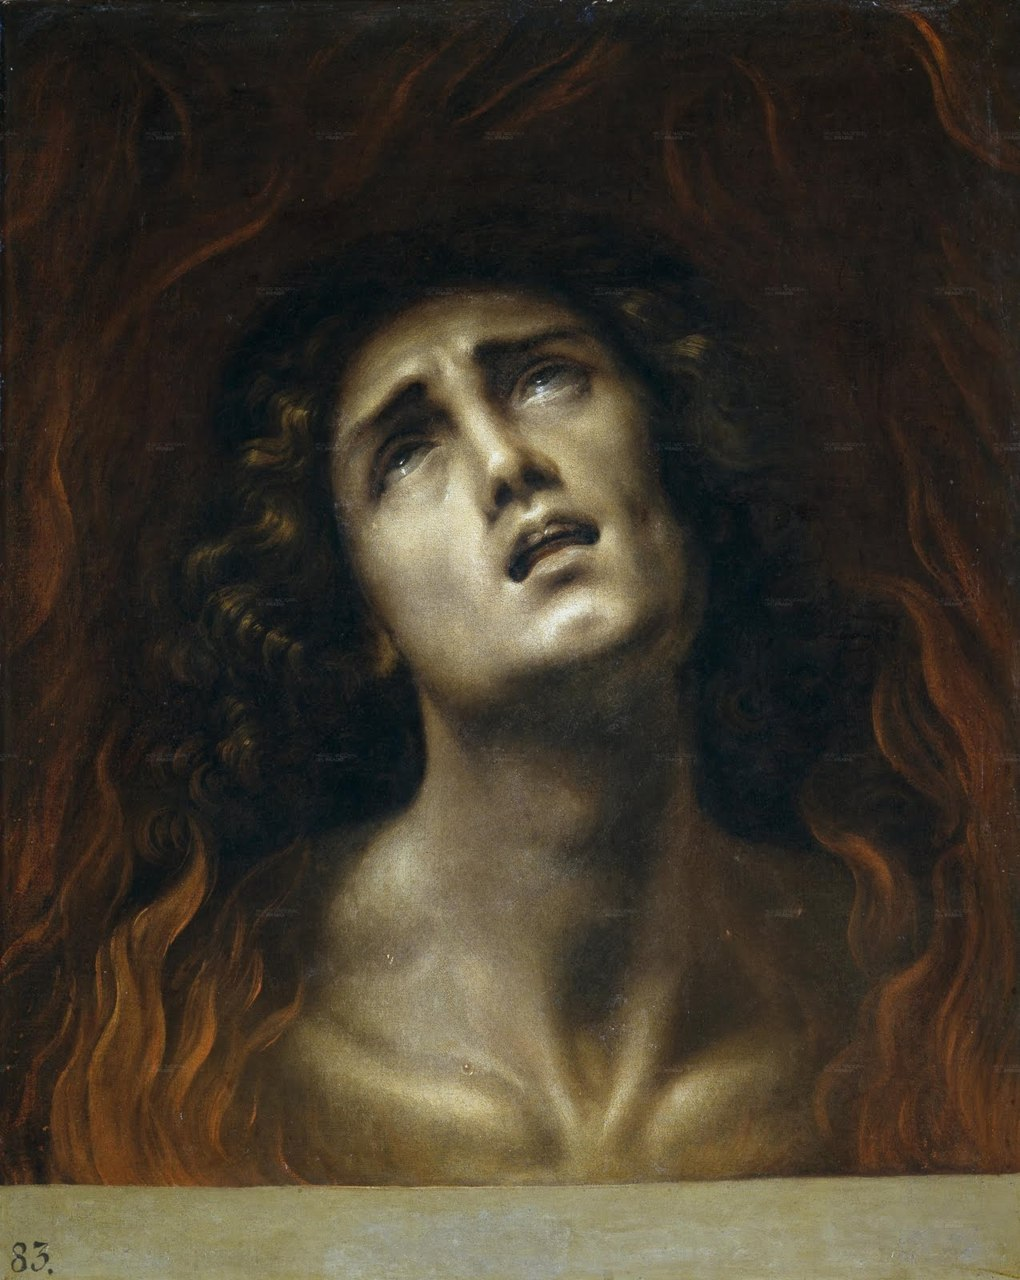 necspenecmetu:  Francisco Ribalta, The Soul in Pain, c. 1605-10